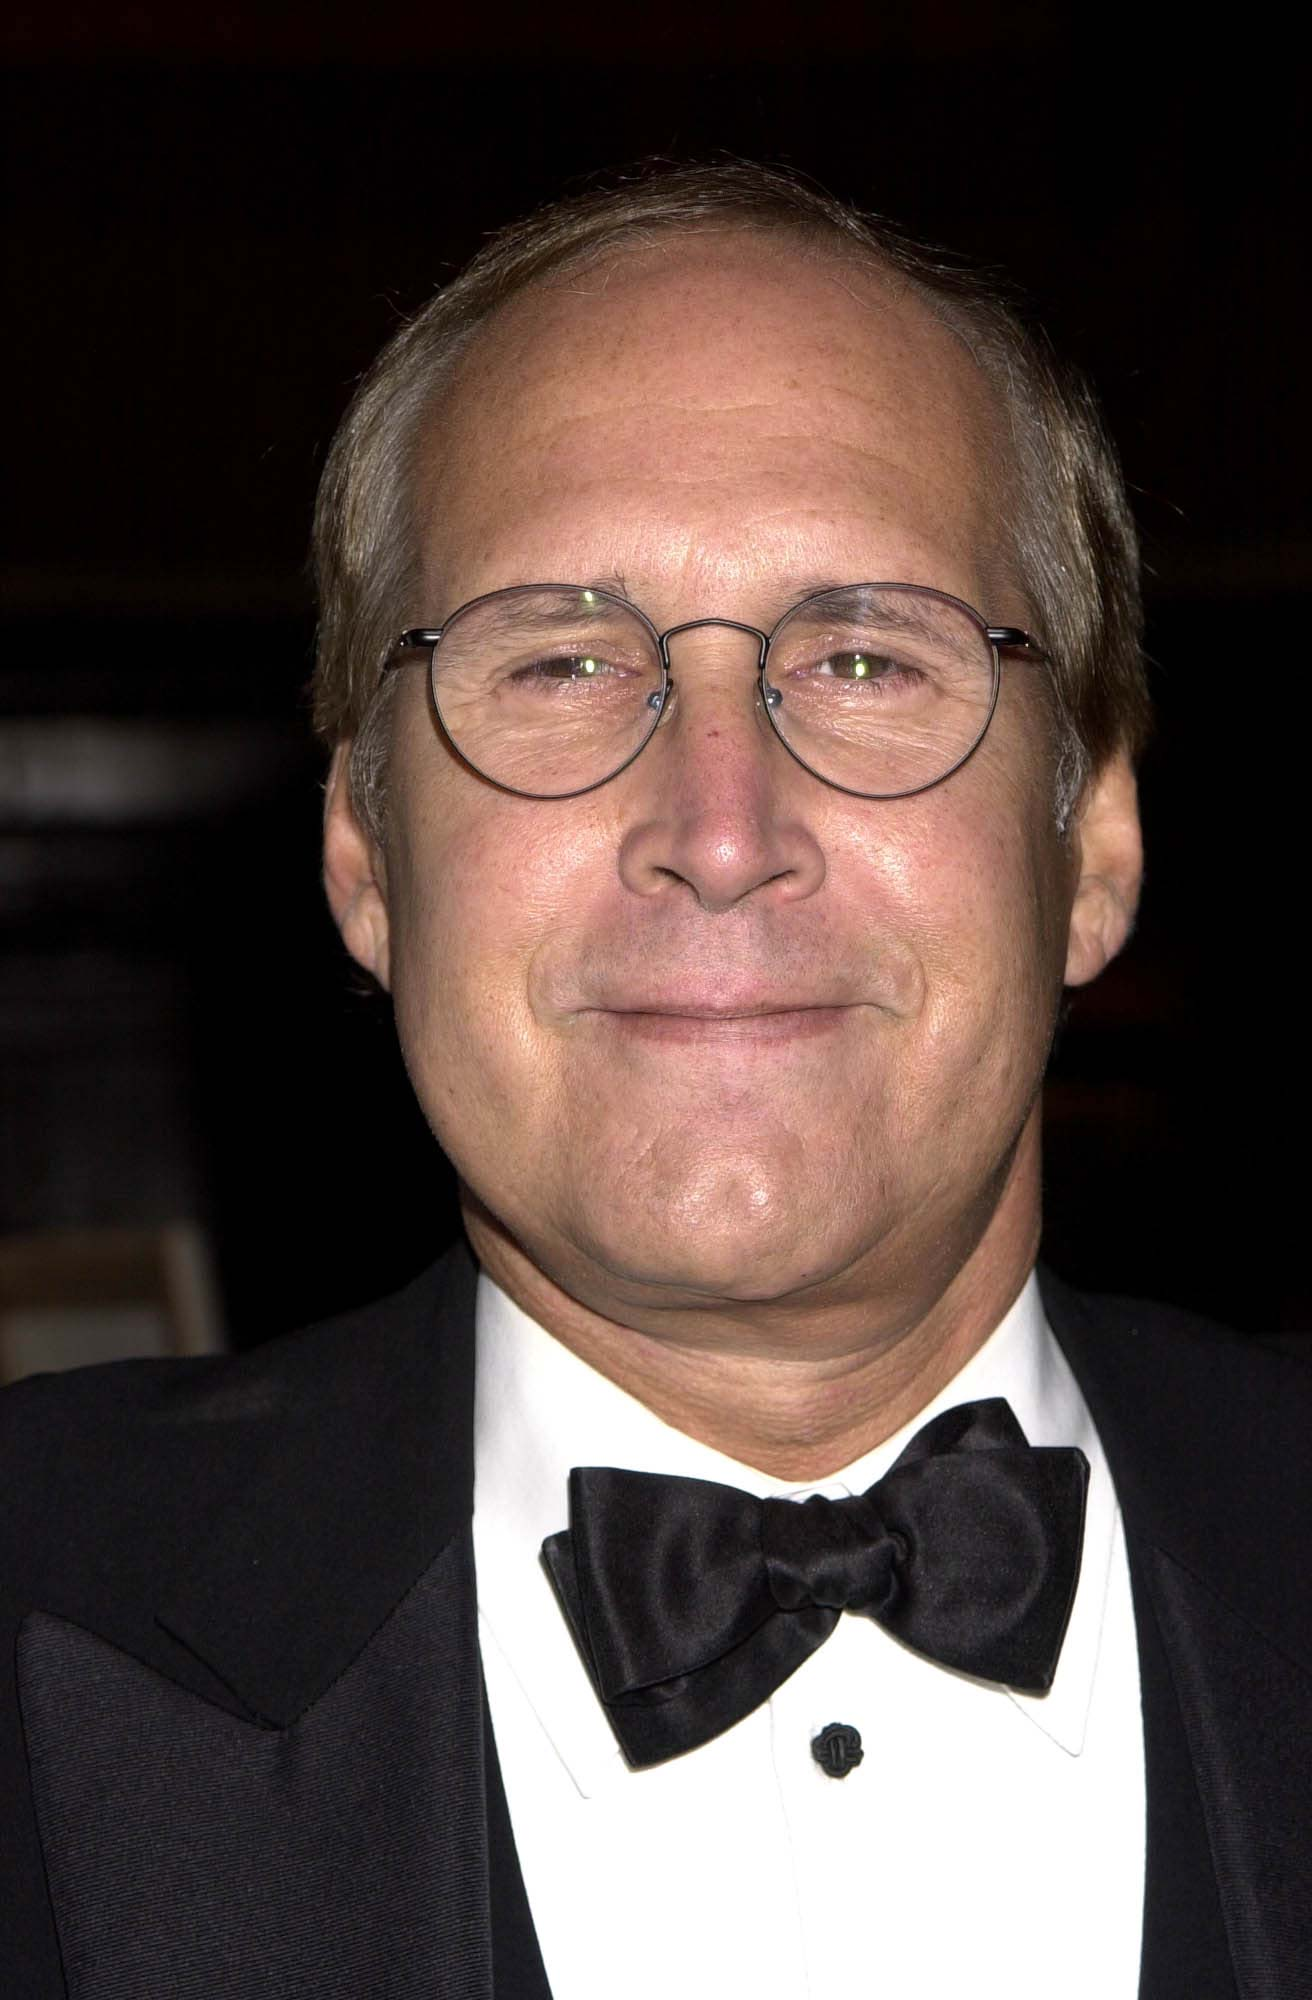 Chevy Chase - Chevy Chase Fanclub Photo (32511010) - Fanpop